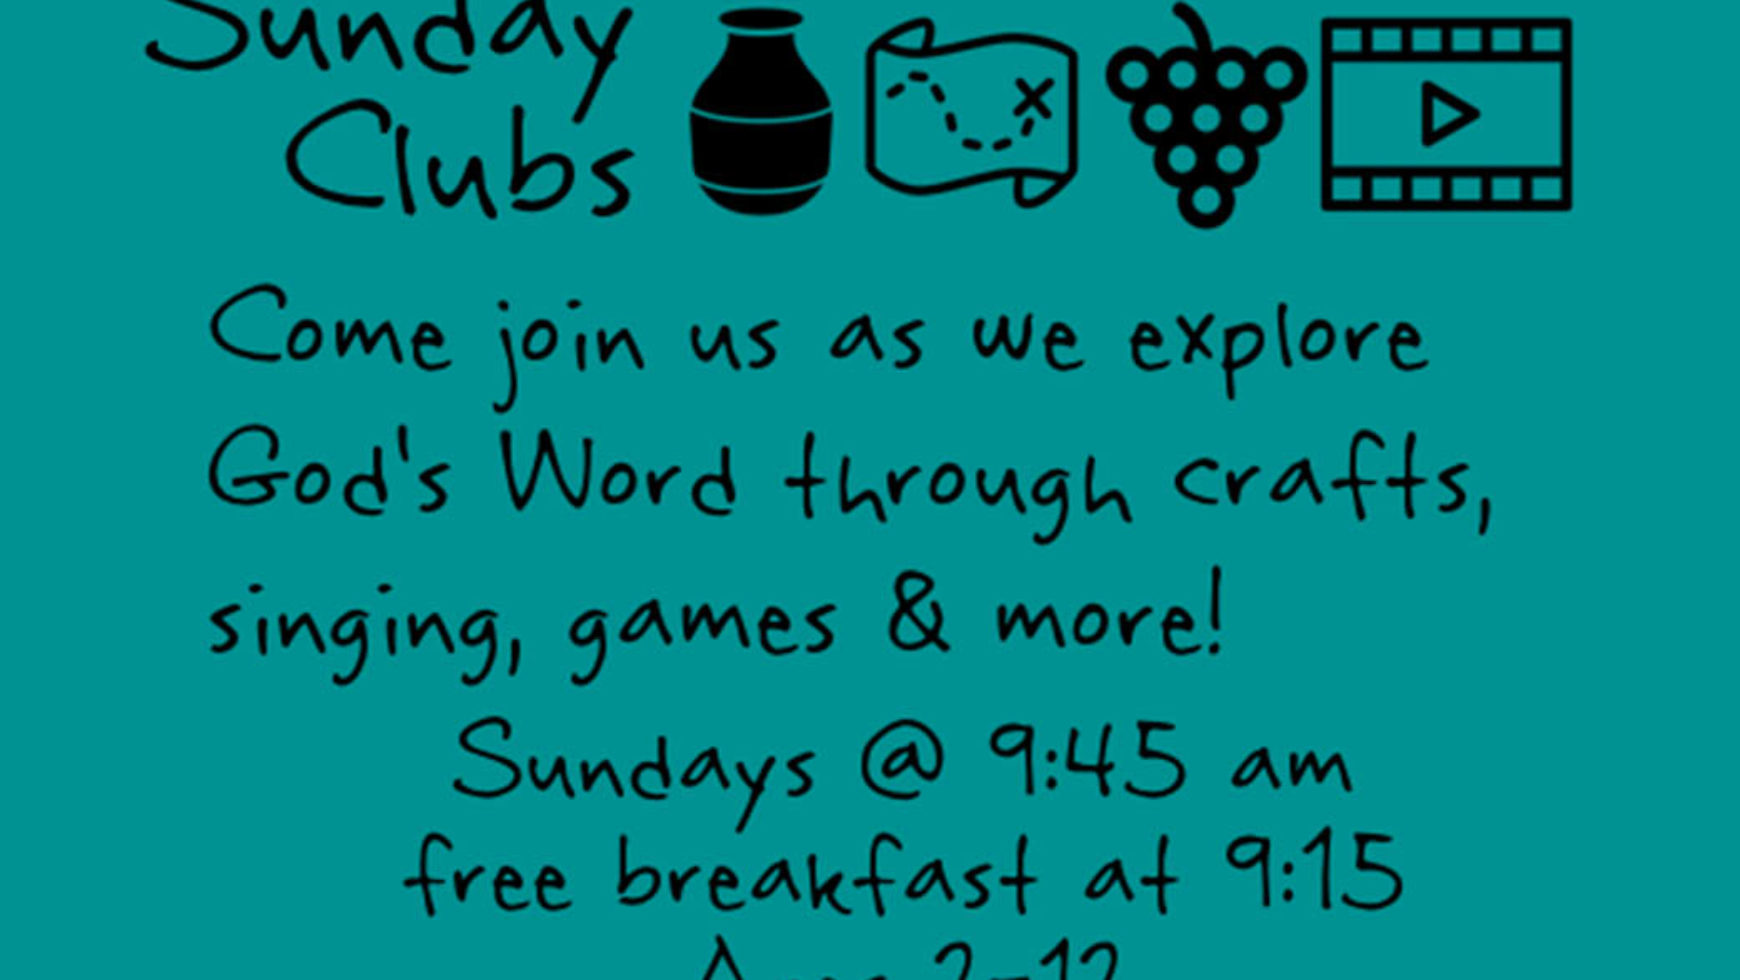 Sunday Club (Children)